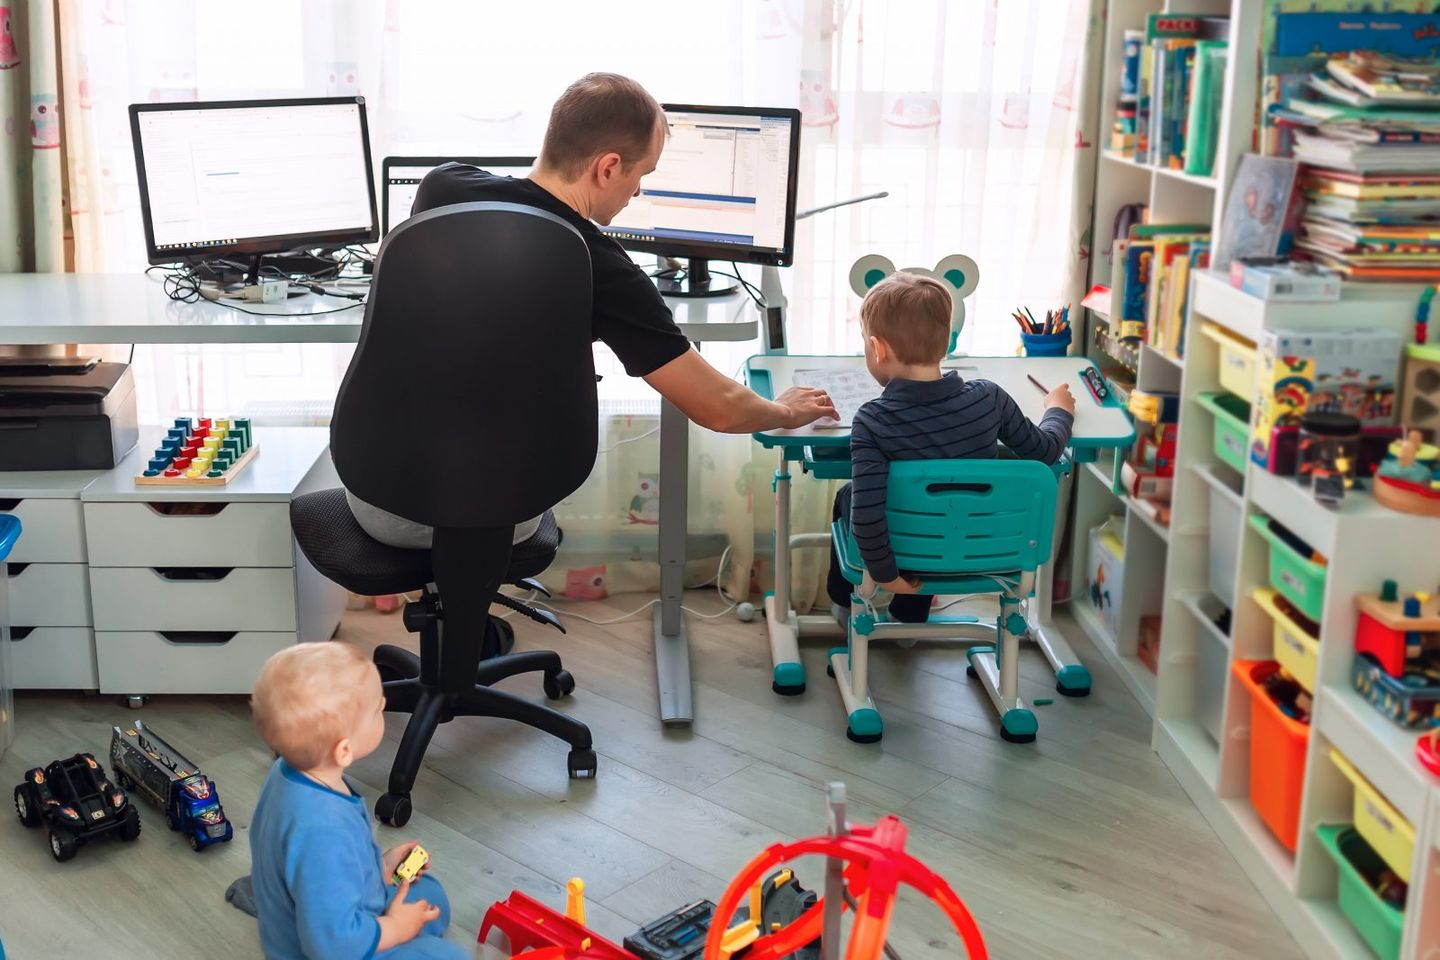 Father with kids working from home during quarantine stay at home work from home concept during coronavirus pandemic